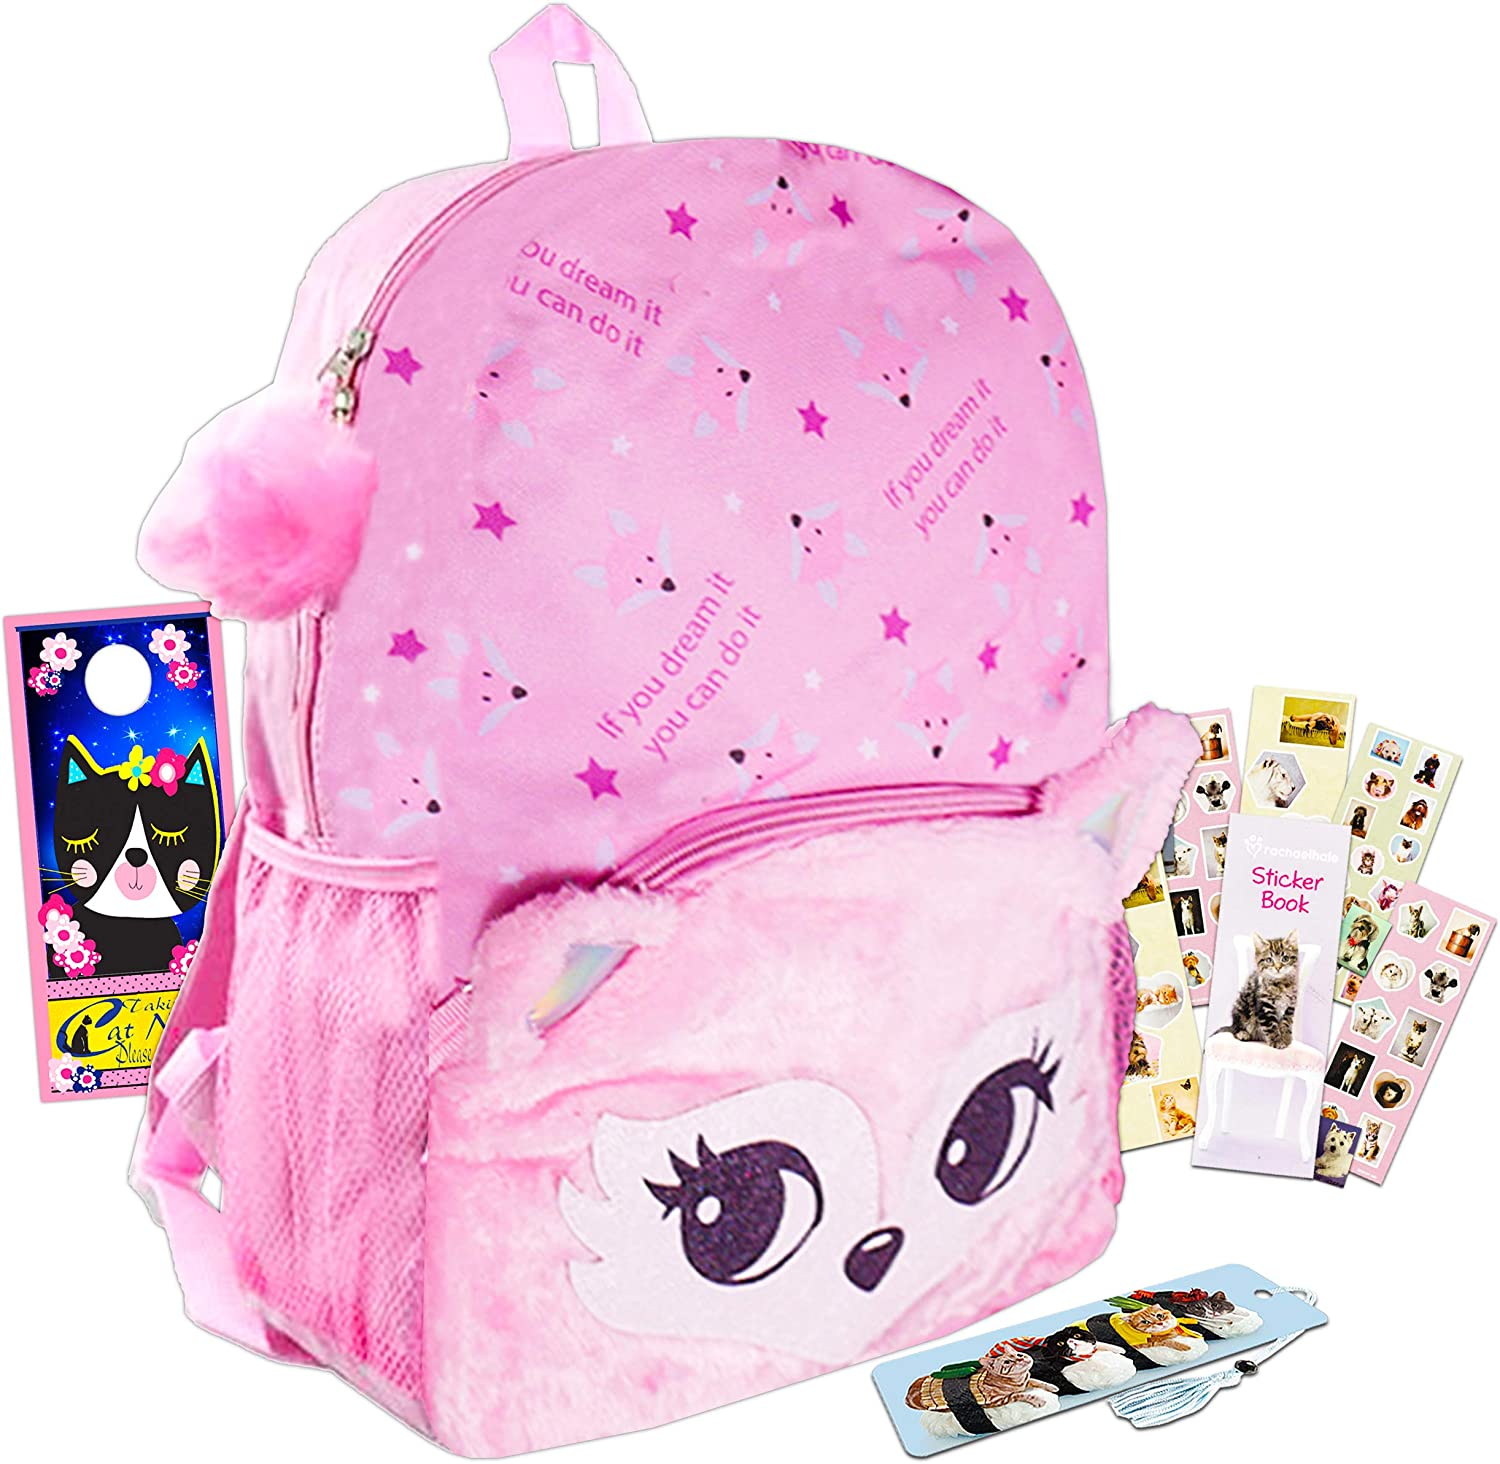 Cute Fox Backpack for Girls Teens ~ Premium 16 Fuzzy Plush Backpack with Bonus Stickers and Accessories Cute School Supplies